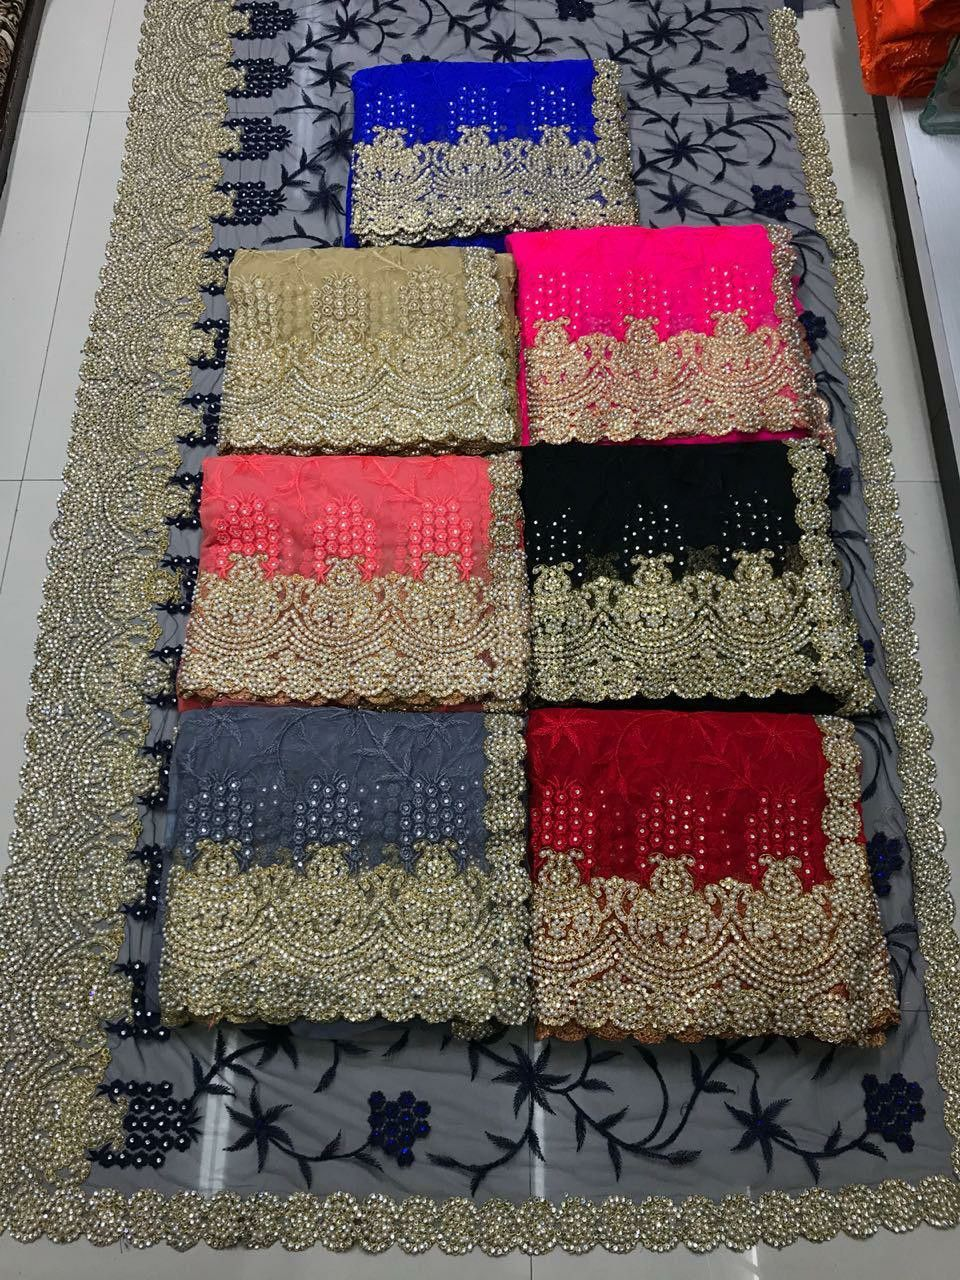 b7430b9e79 M...M Single Available FABRIC DETAILS *Full saree of heavy quality ...